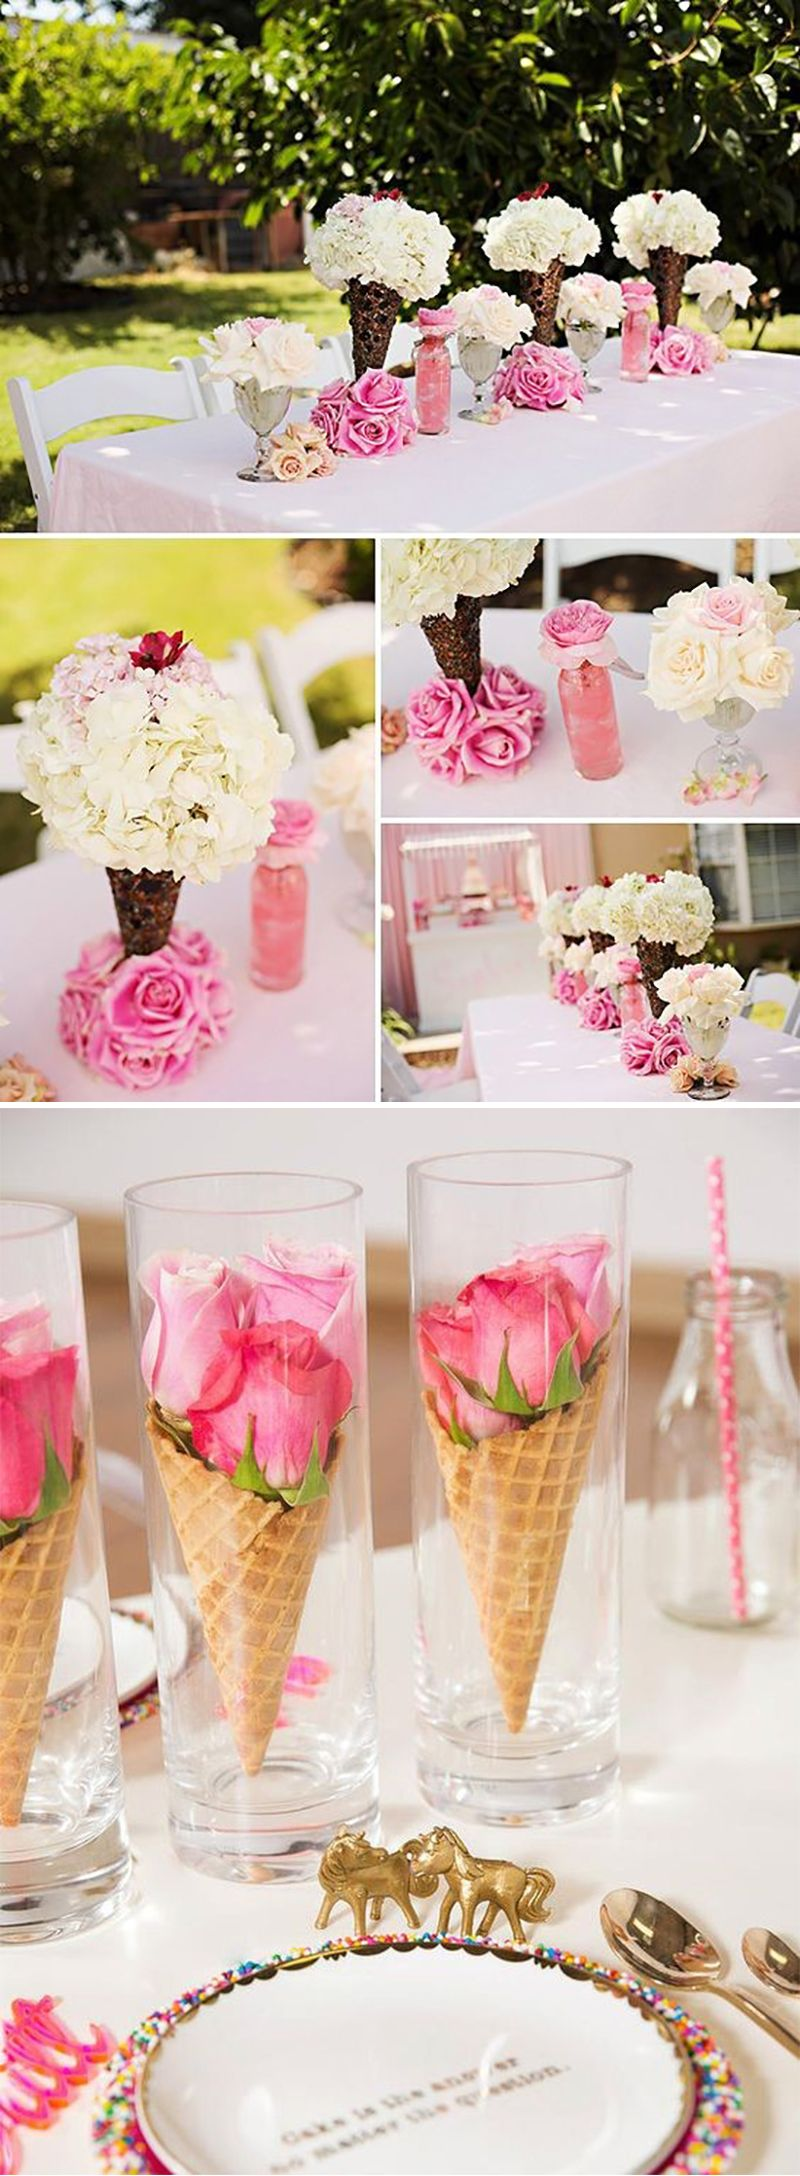 Ice Cream Themes bridal Shower | BridalPulse - Fun Ice Cream Ideas ...